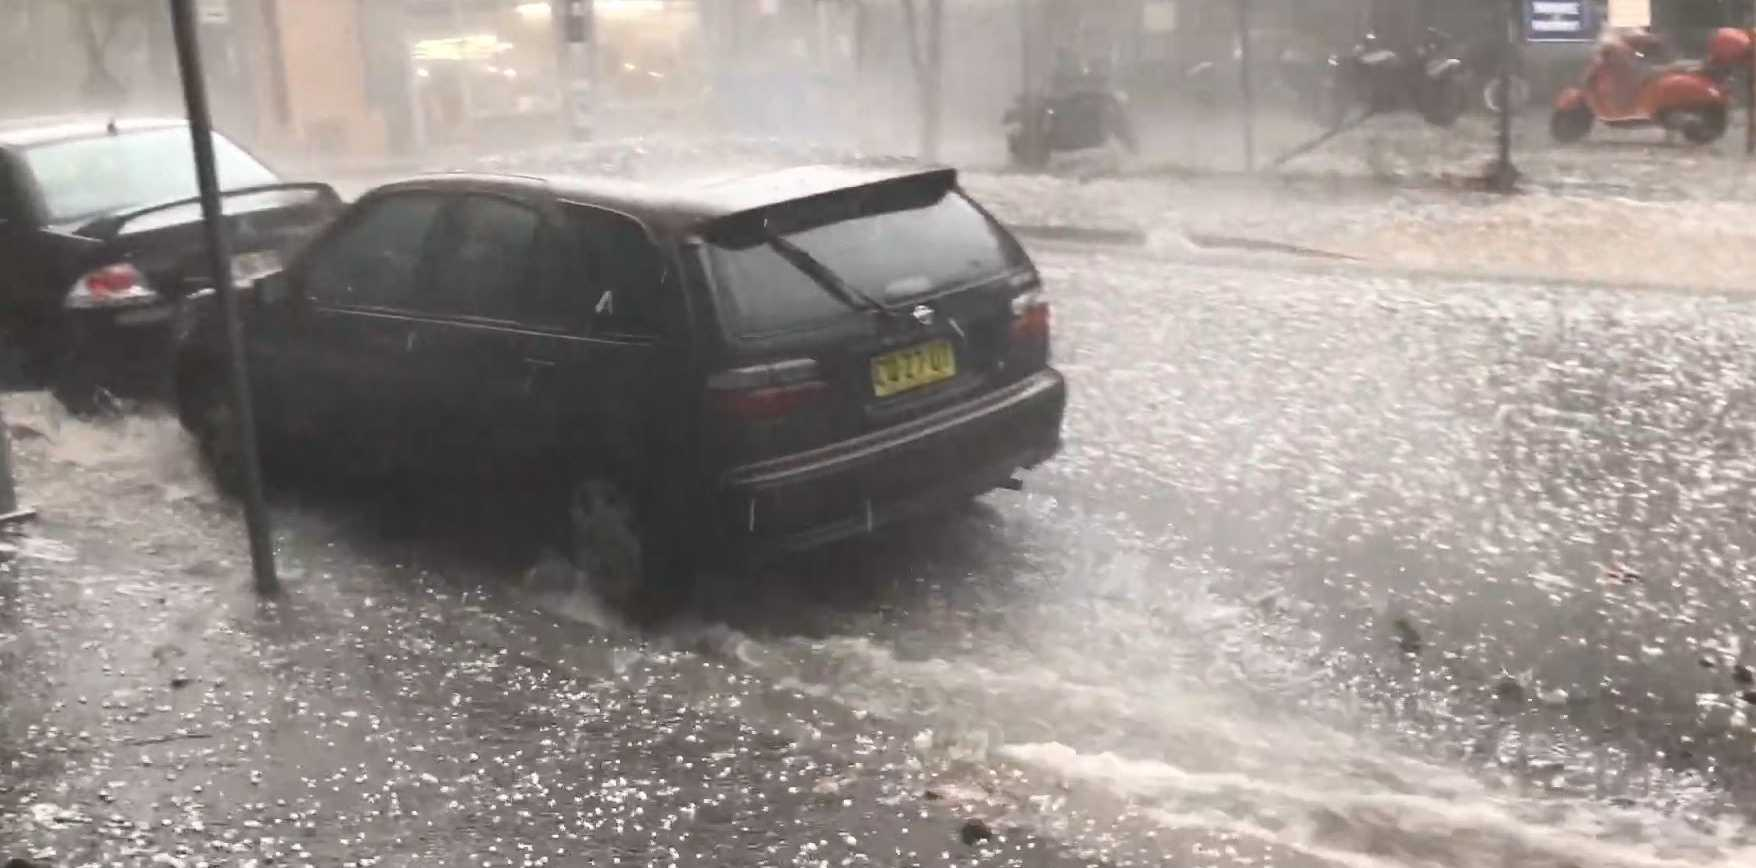 WATCH: River of hail sweeps through streets of Sydney | Seniors News